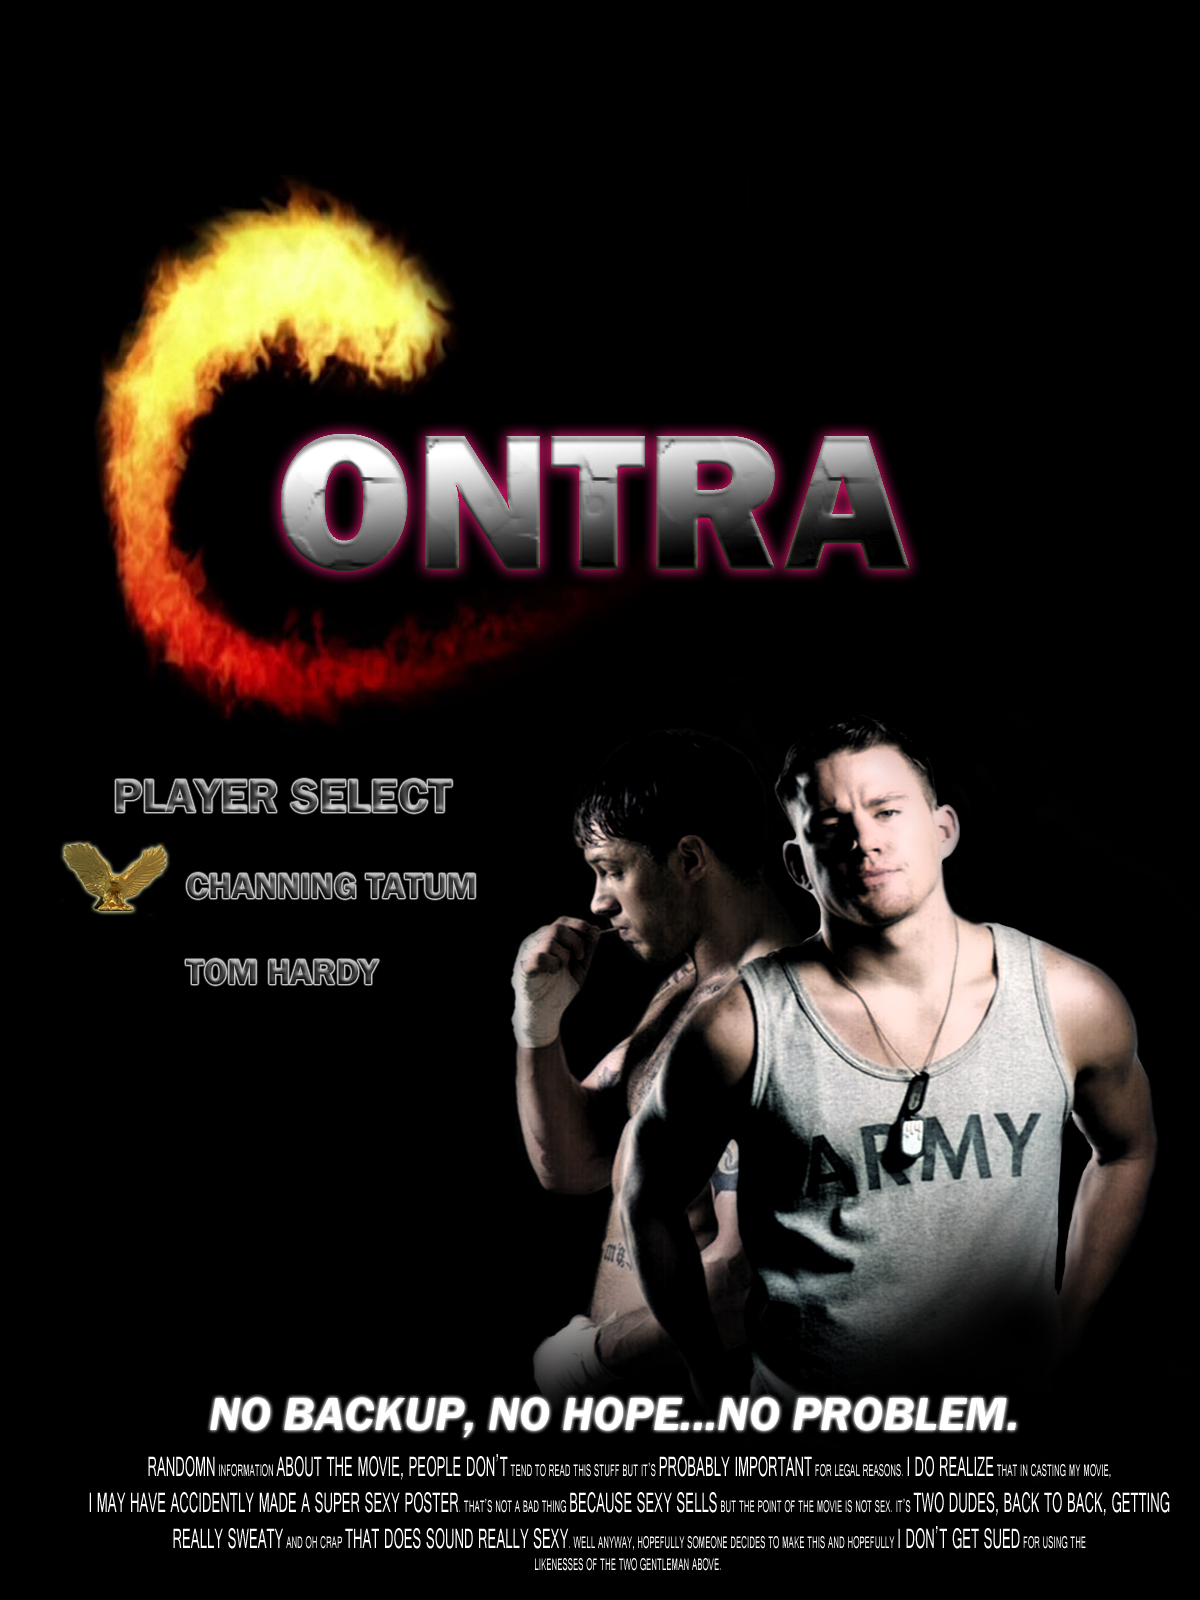 Pitched: The Contra Movie